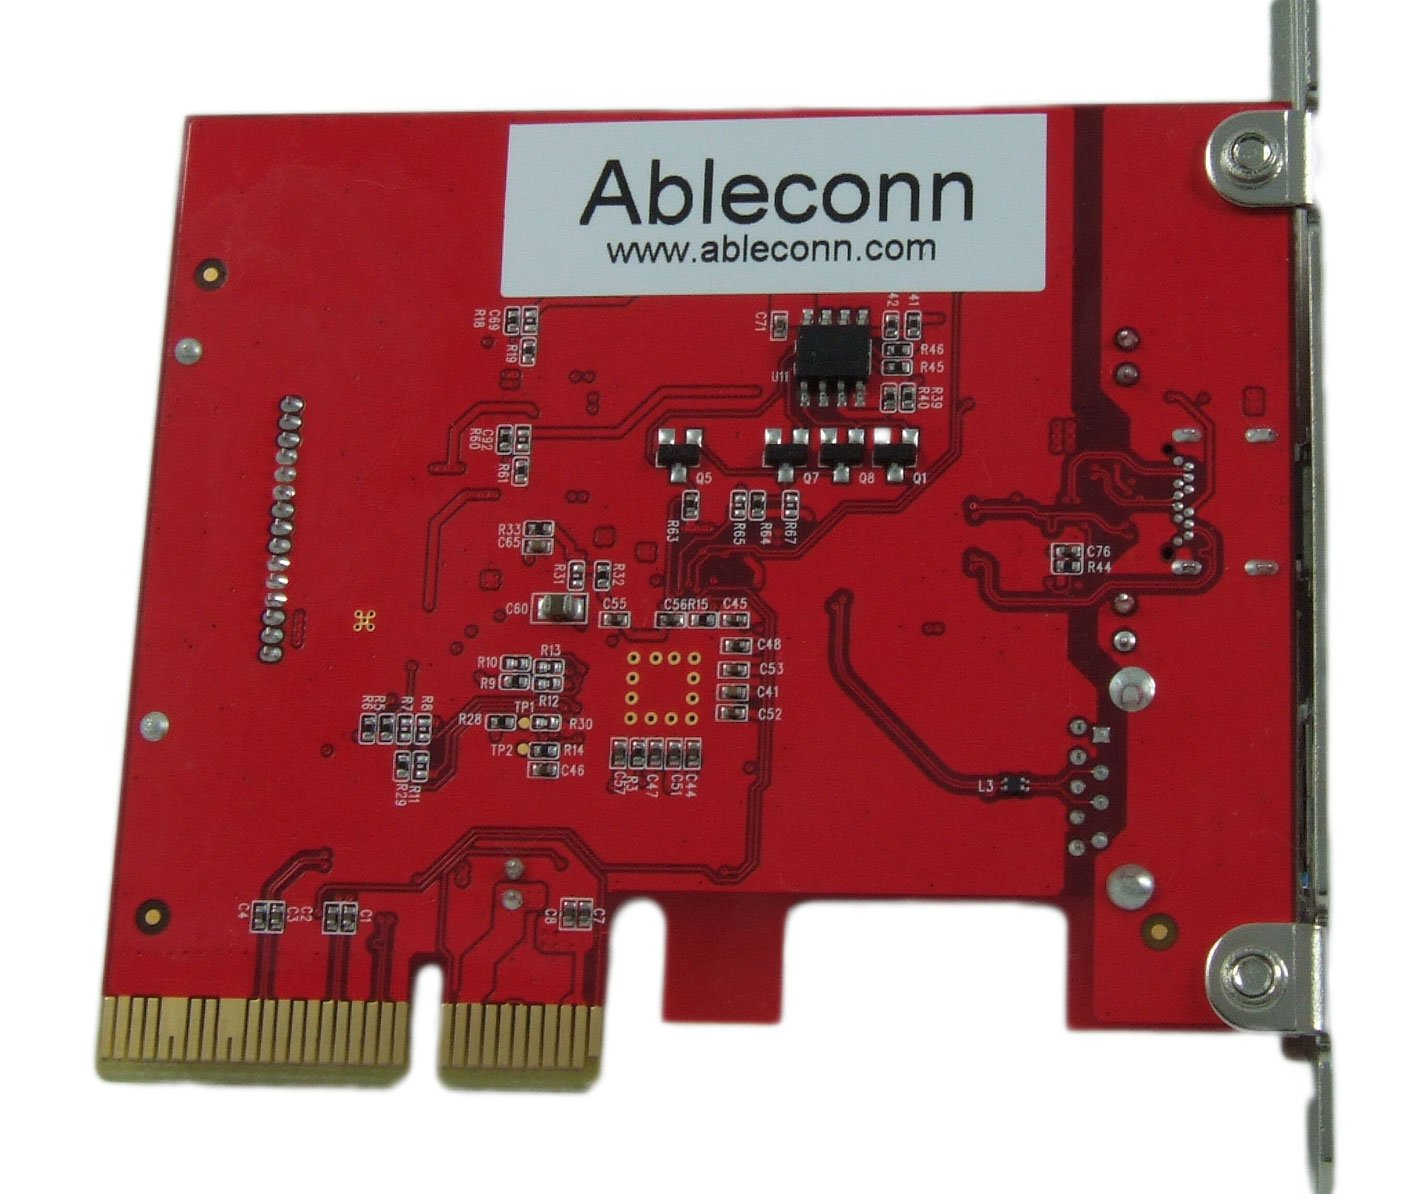 Ableconn PU31-1A1C USB 3.1 Gen 2 (10 Gbps) Type-C & Type-A PCI Express (PCIe) x4 Host Adapter Card - Dual USB3.1 10Gbps With One USB-C and One USB-A - Support Mac OS X 10.12/10.13 and Windows 10/8 by Ableconn